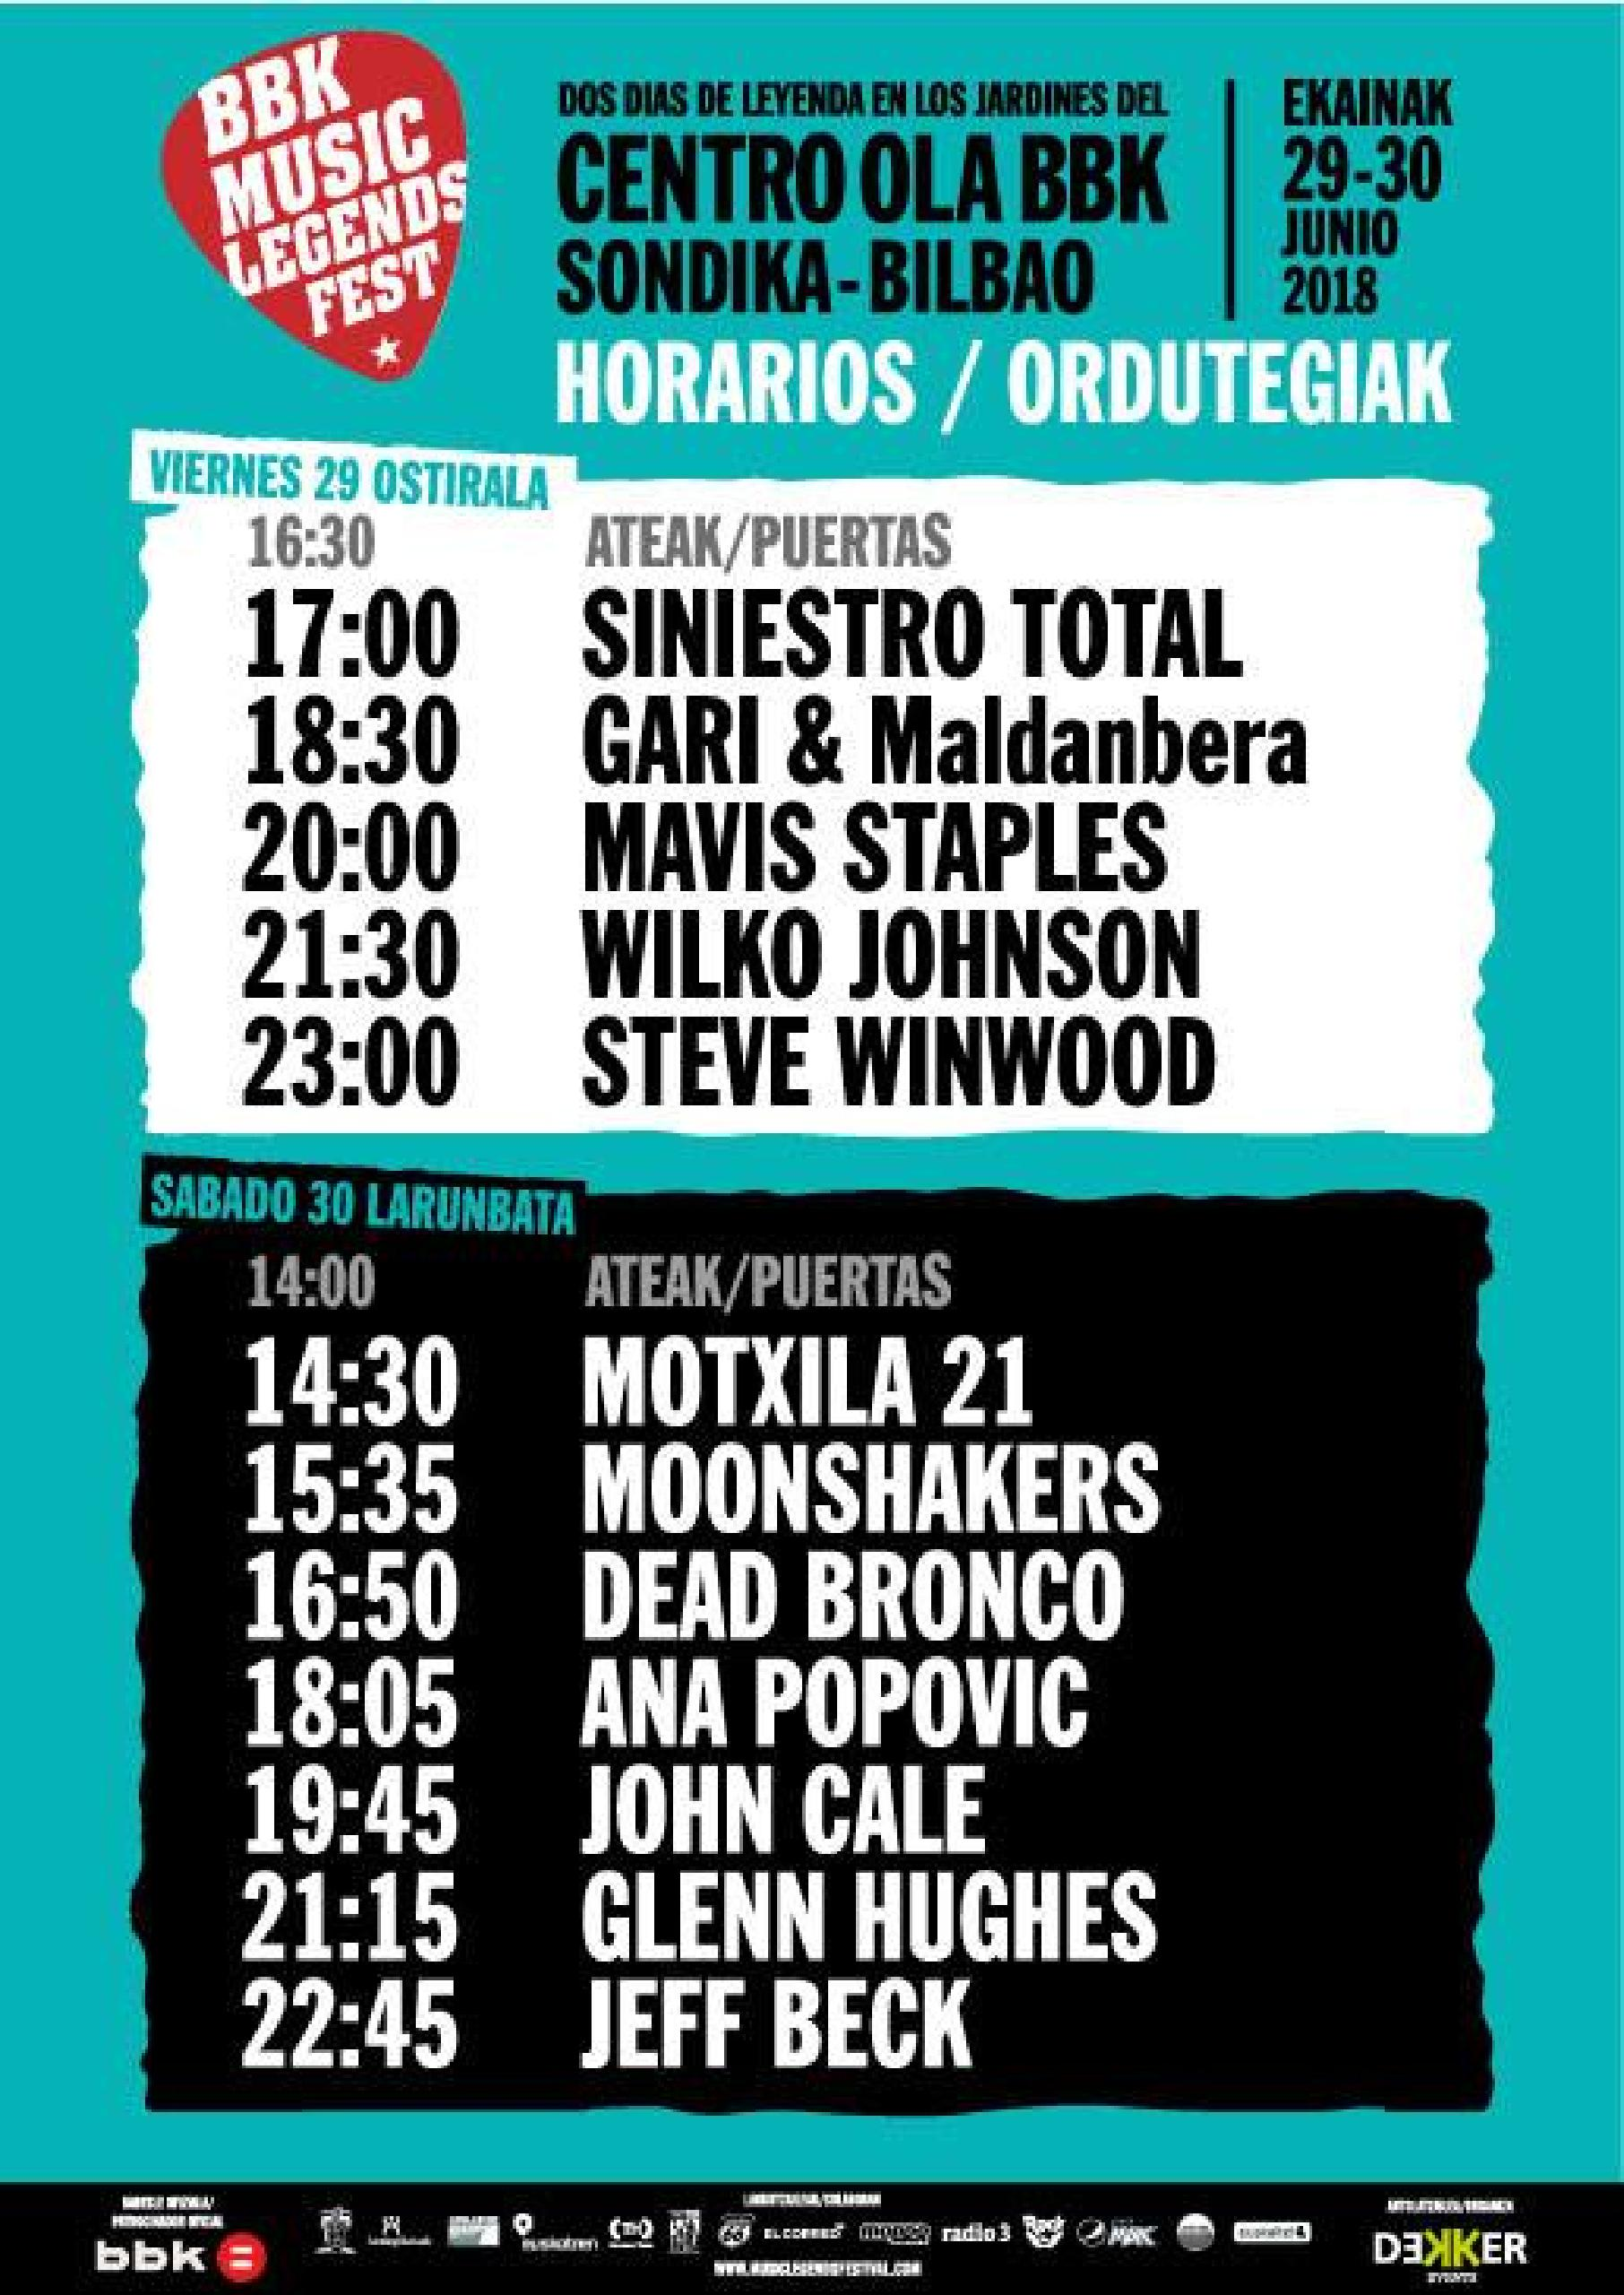 Horarios BBK Music Legends 2018